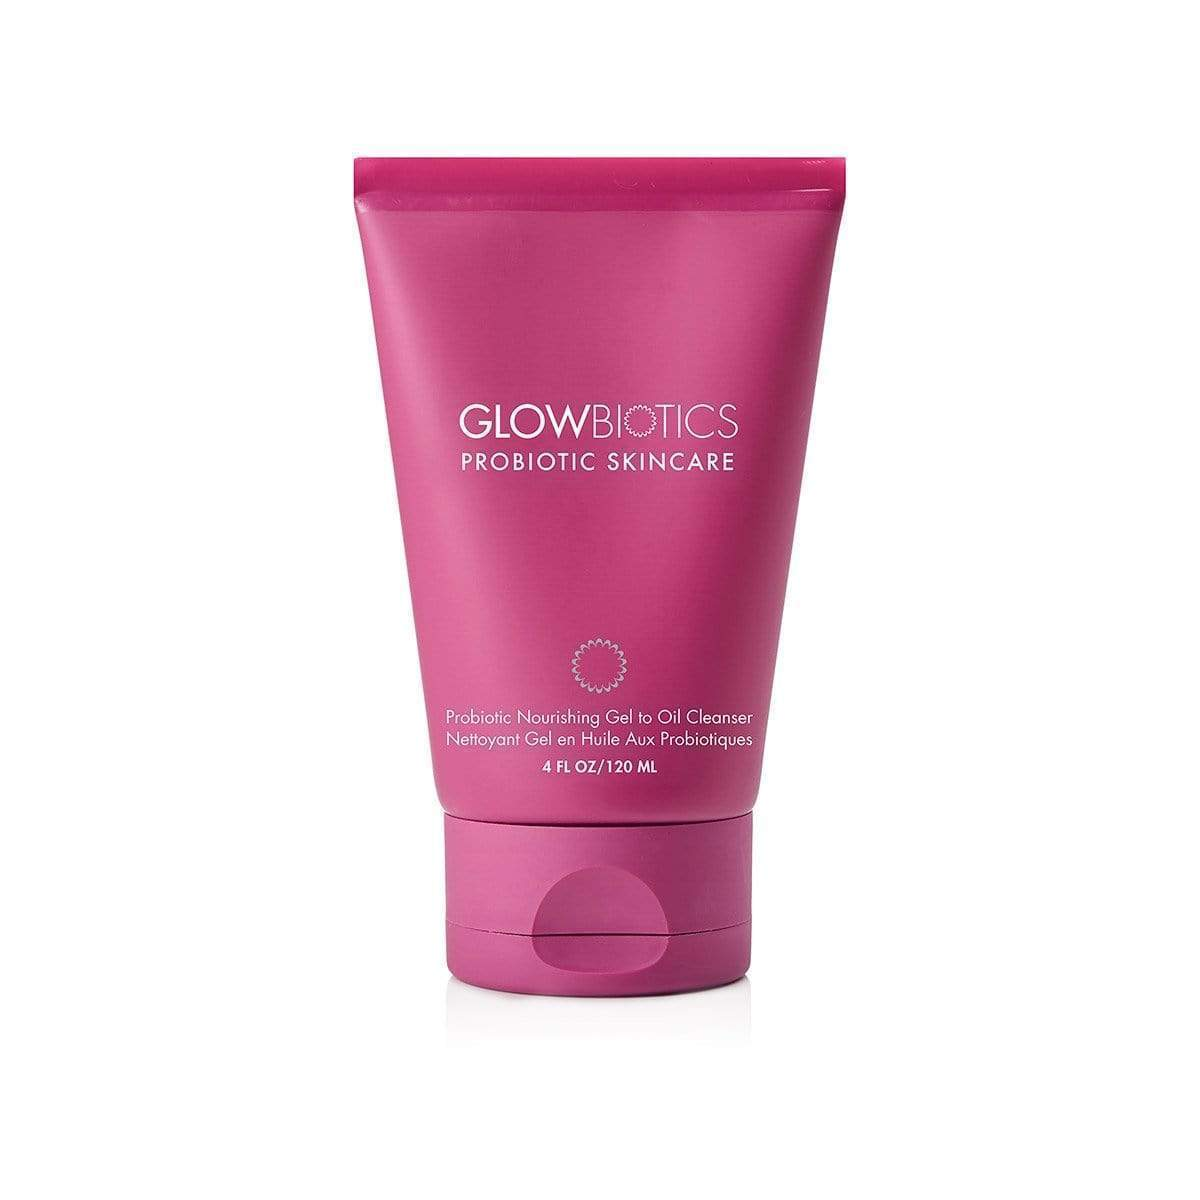 Glowbiotics Probiotic Nourishing Gel to Oil Cleanser in a Pink Bottle 4 fl oz